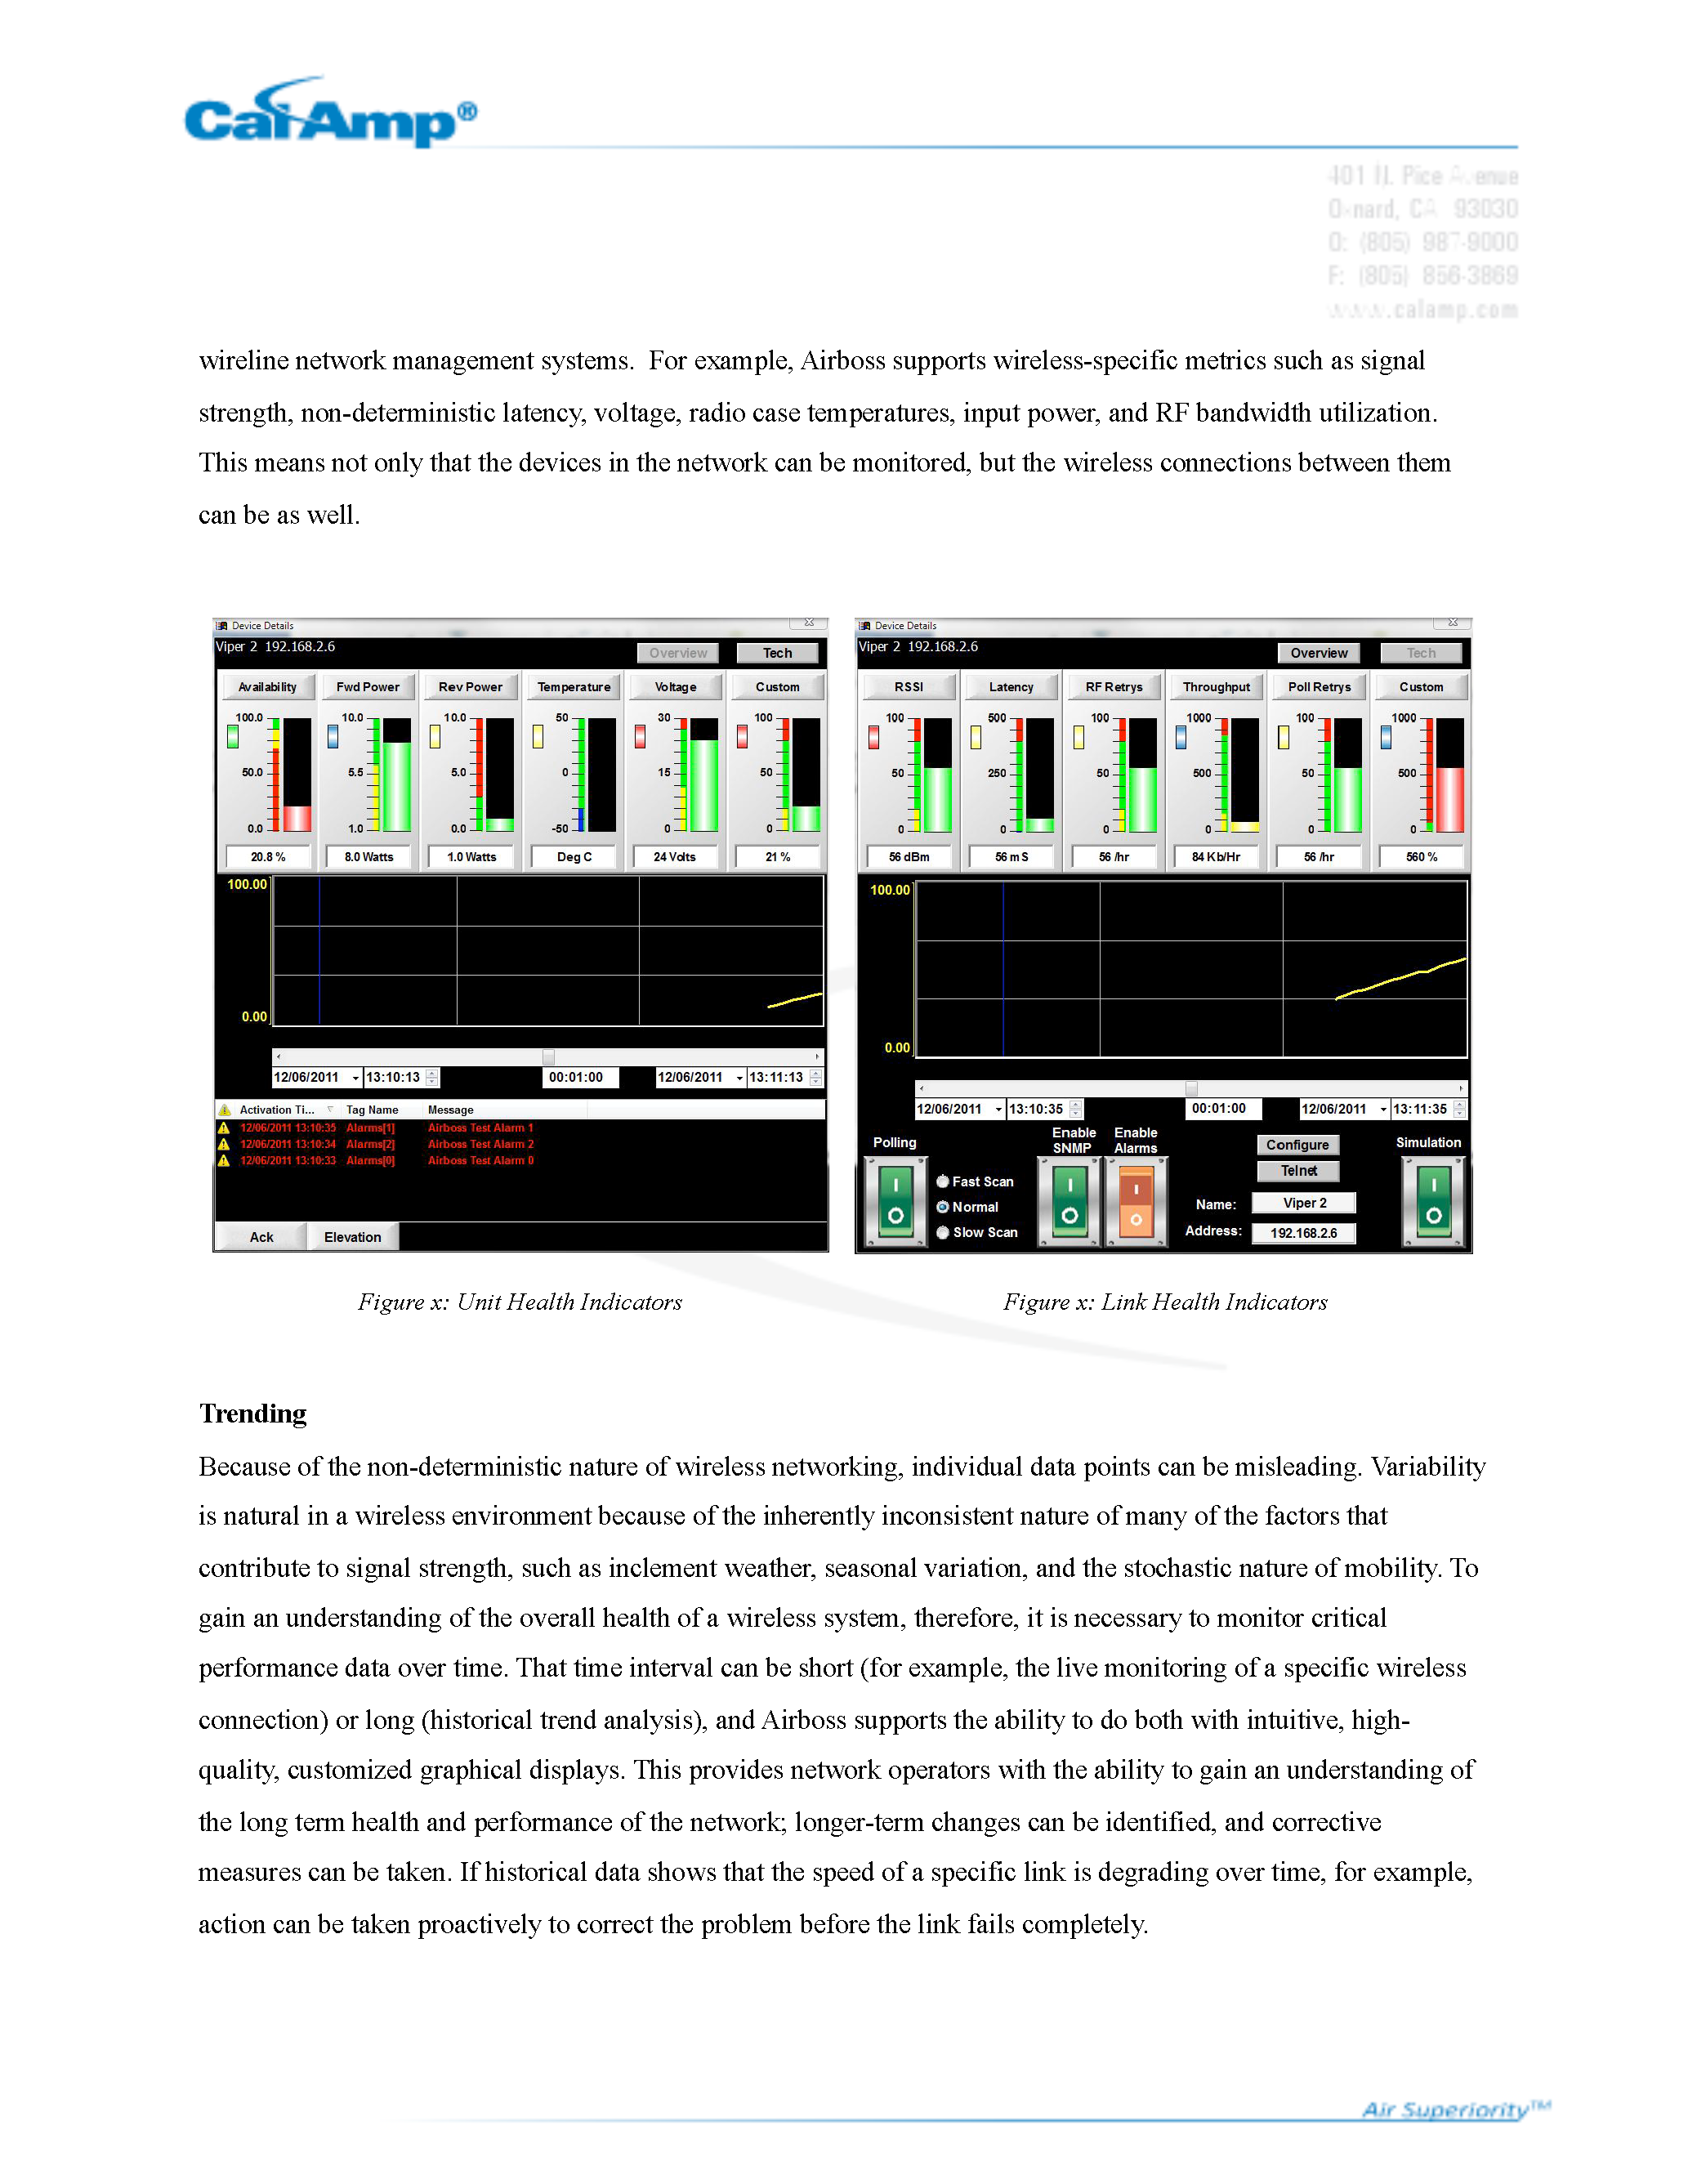 Calamp Network Management Services_Page_3.png